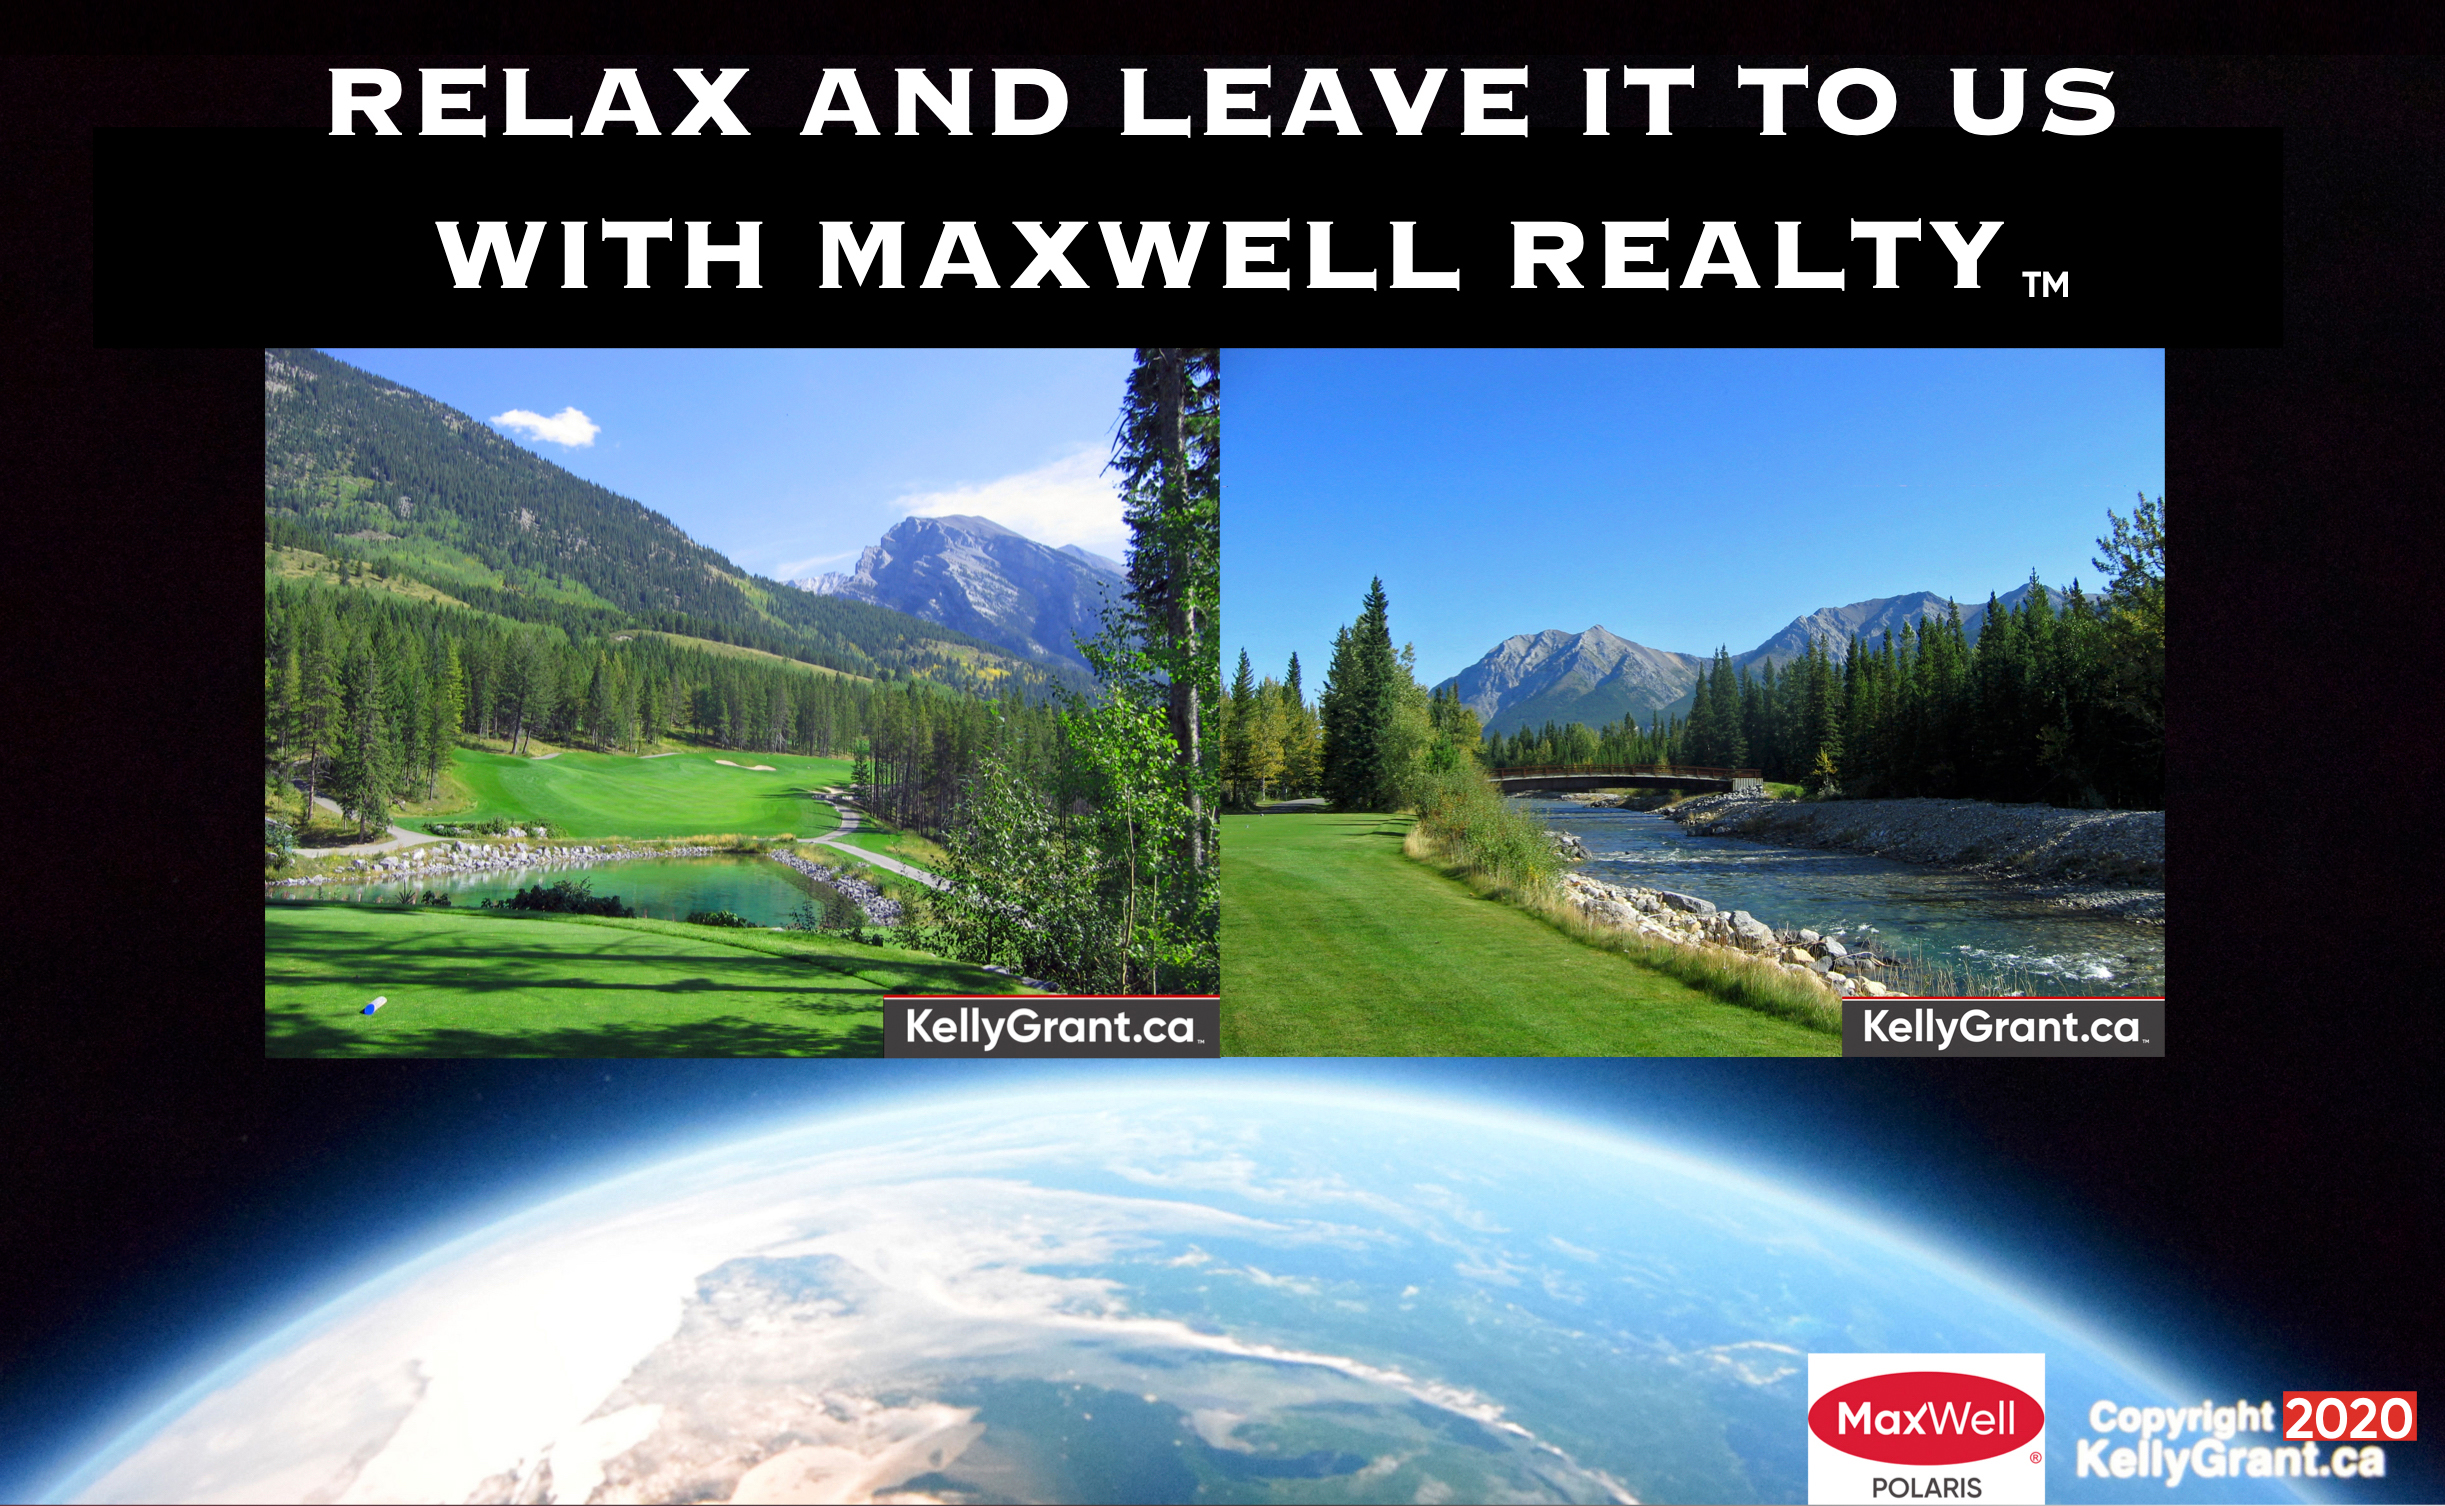 #47-KG MaxWell Relax & Leave it to Us.jpg